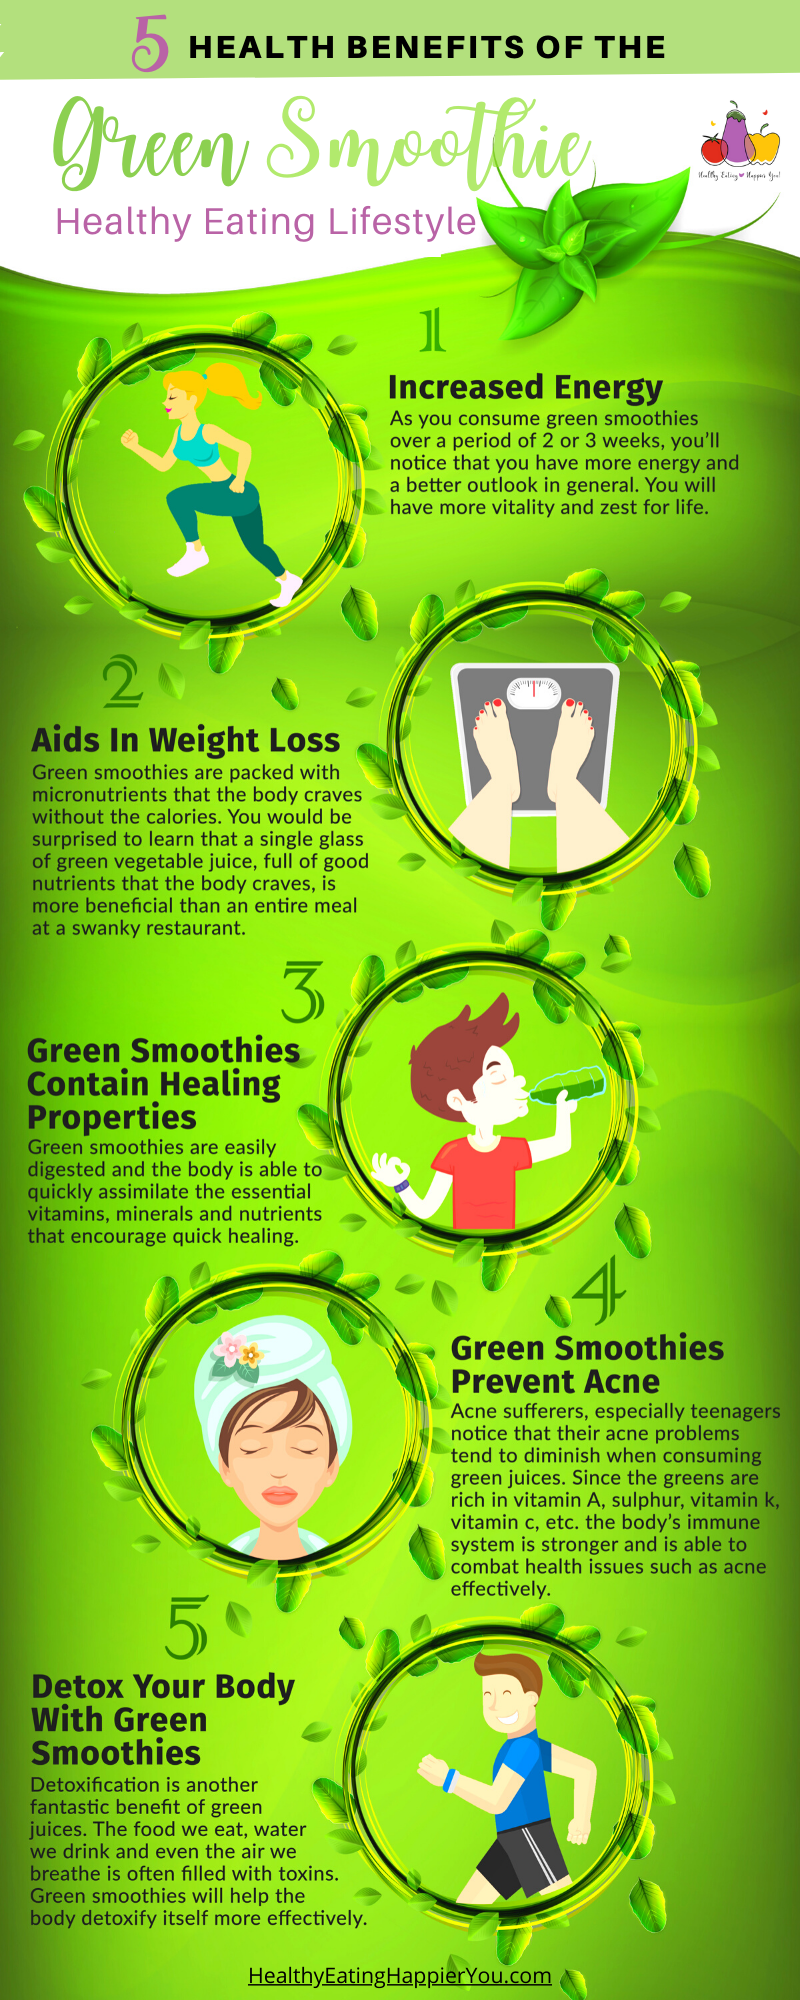 Health Benefits of the Green  Smoothie Healthy Eating Lifestyle